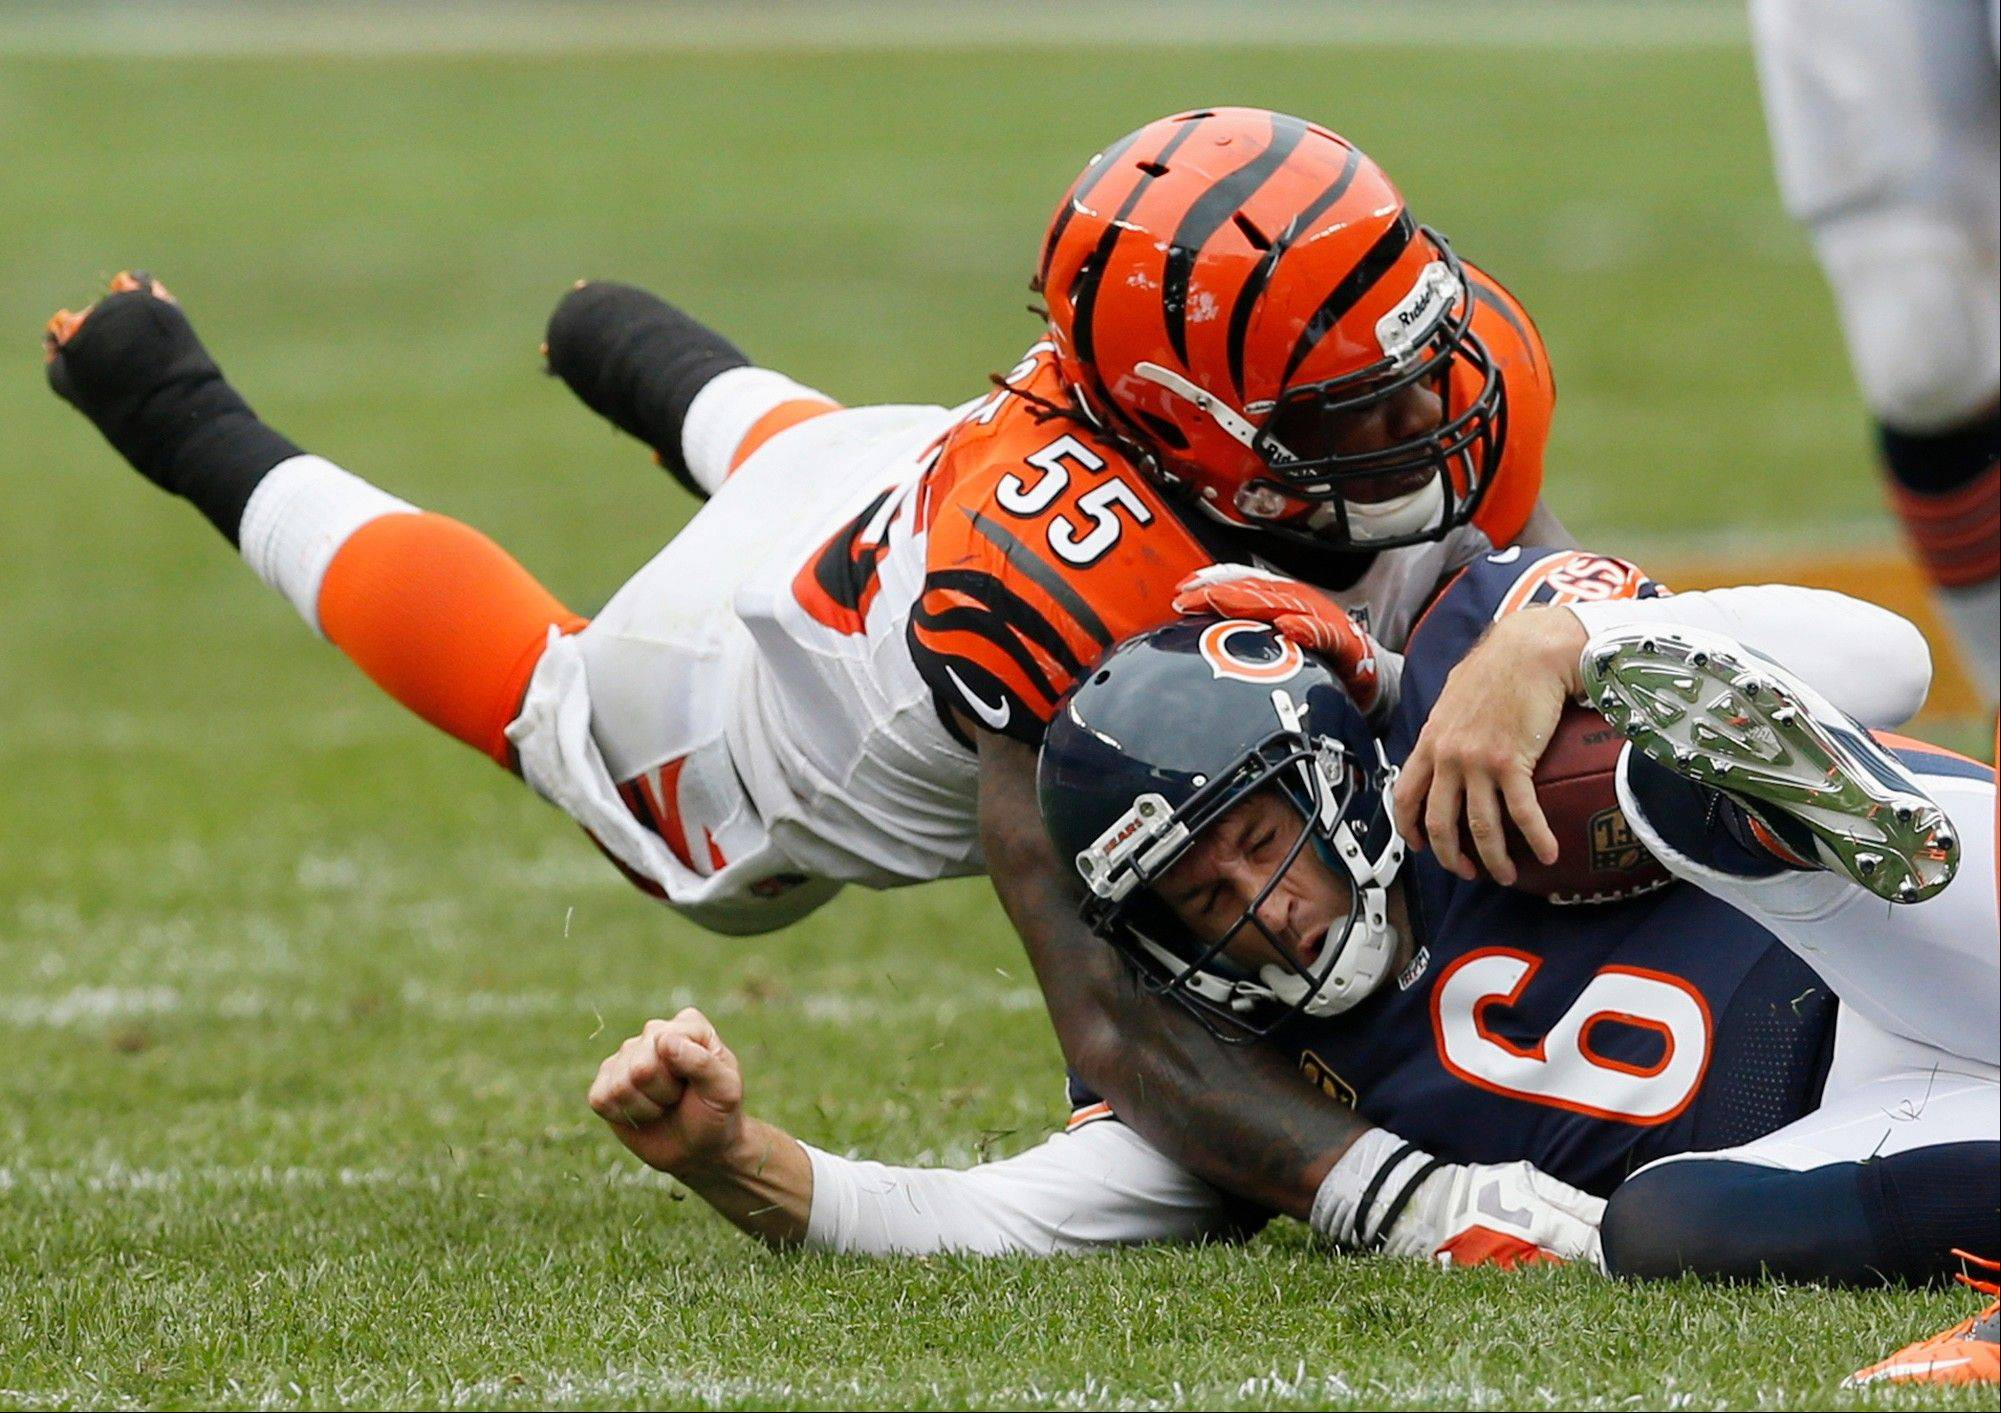 Cincinnati Bengals linebacker Vontaze Burfict (55) runs into Chicago Bears quarterback Jay Cutler as Cutler slides for yardage during the second half of an NFL football game, Sunday, Sept. 8, 2013, in Chicago. The Bears won 24-21.